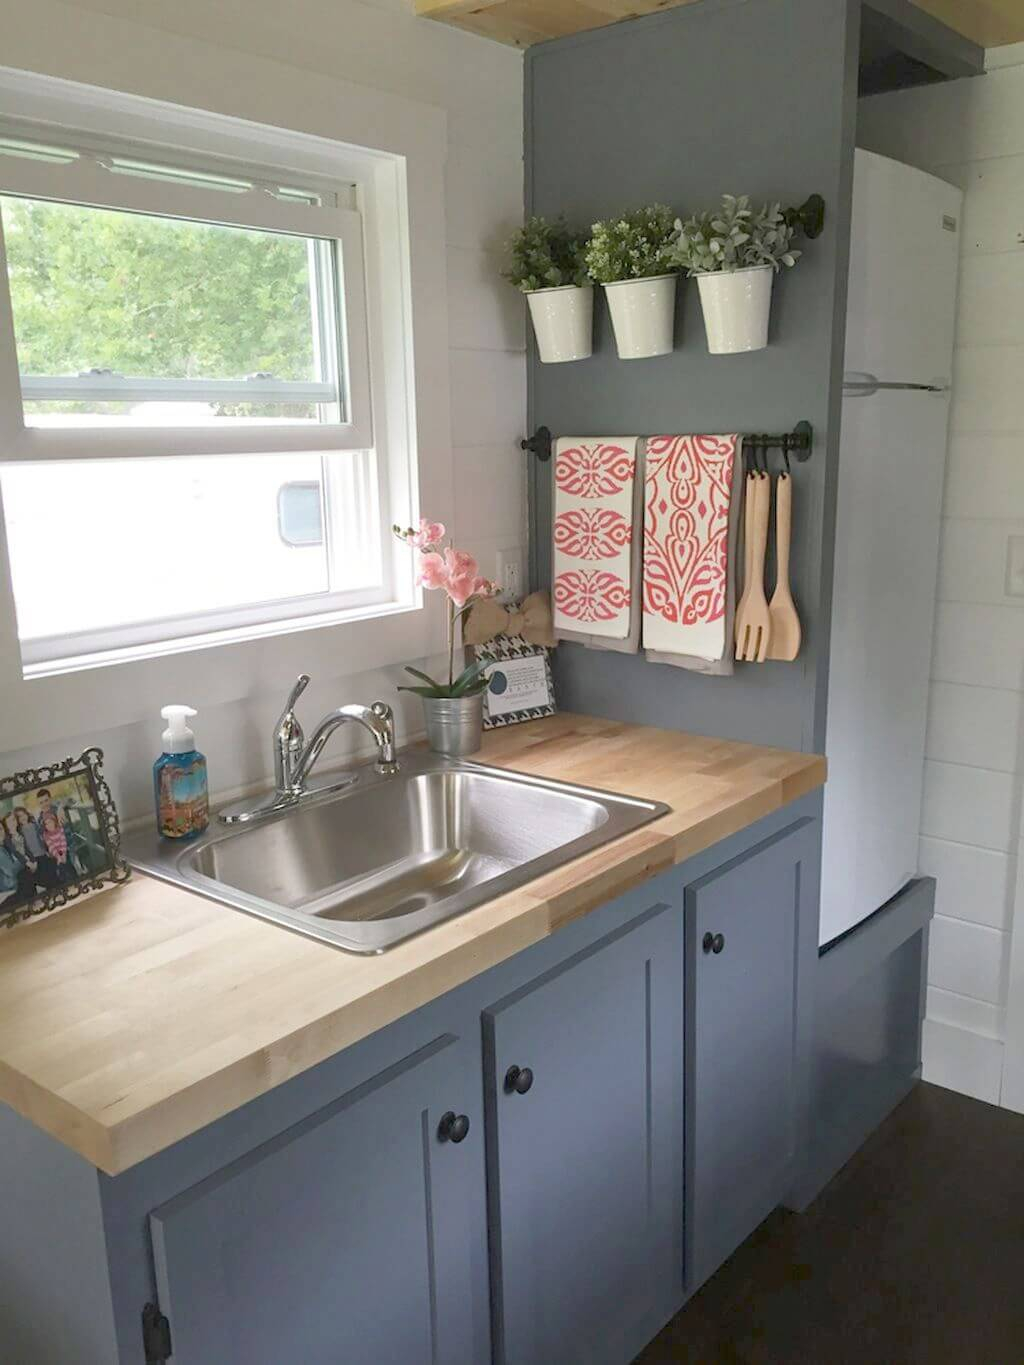 9 Best Small Kitchen Decor And Design Ideas For 9 – layjao